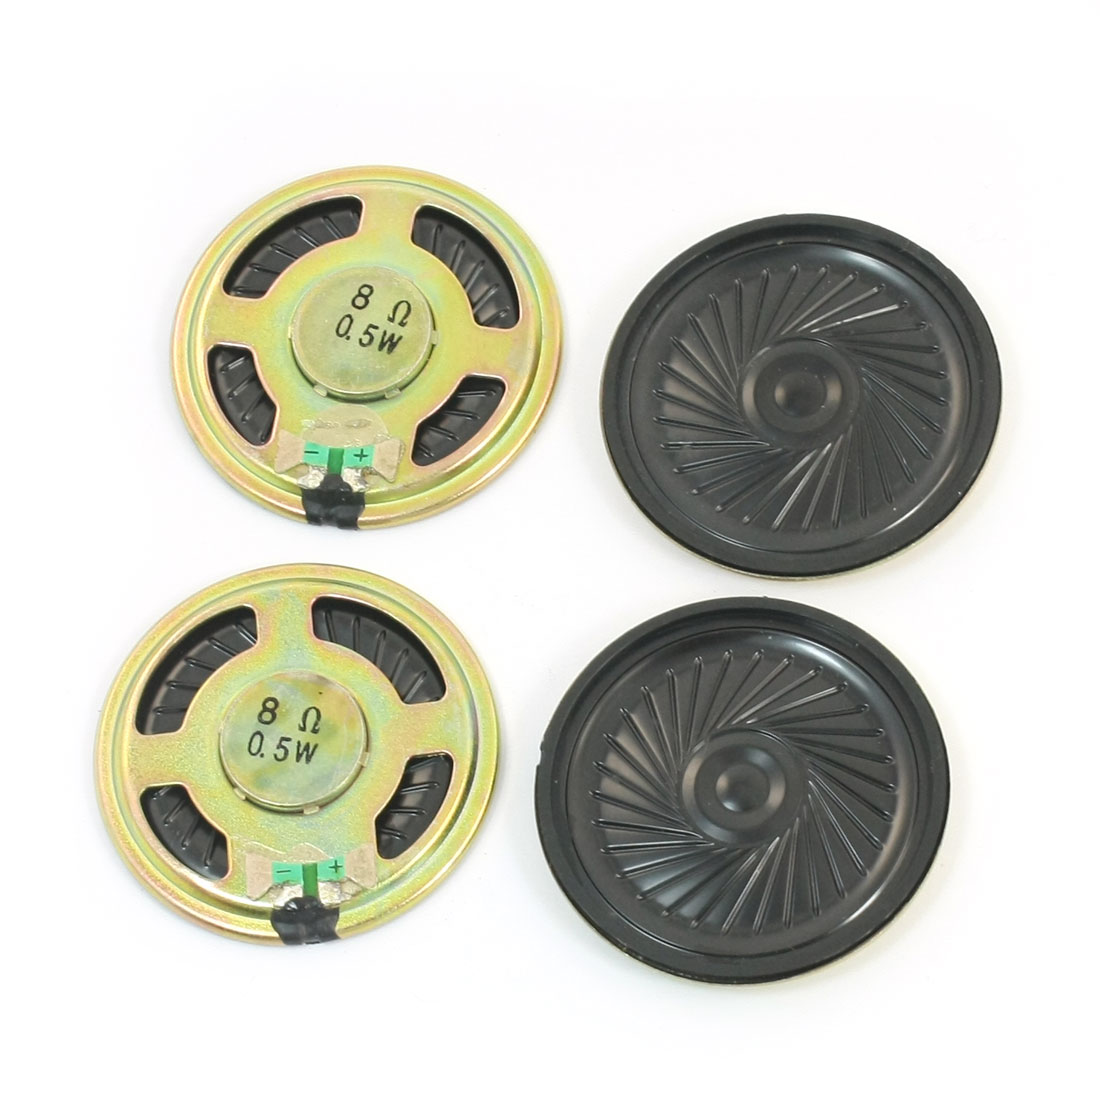 4Pcs 0.5W 8 Ohm 45mm Dia Round Metal Internal Magnet Electronic Toys Music Player Speaker Loudspeaker